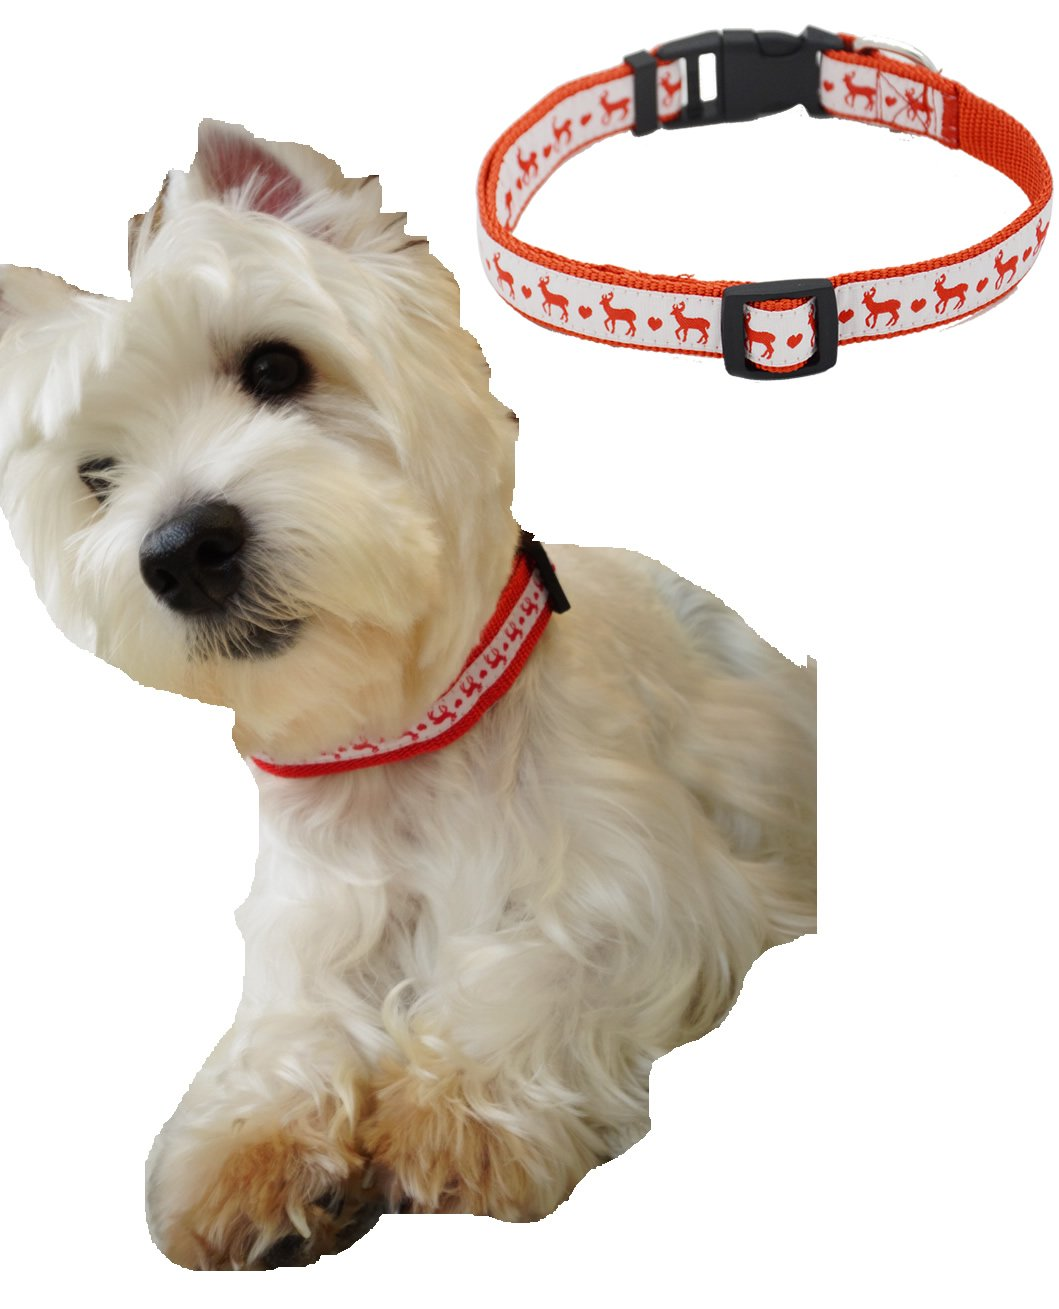 Large Christmas Holiday Dog Collars for Medium Large Dogs, Adjustable 18-26  Red Large (L) Size